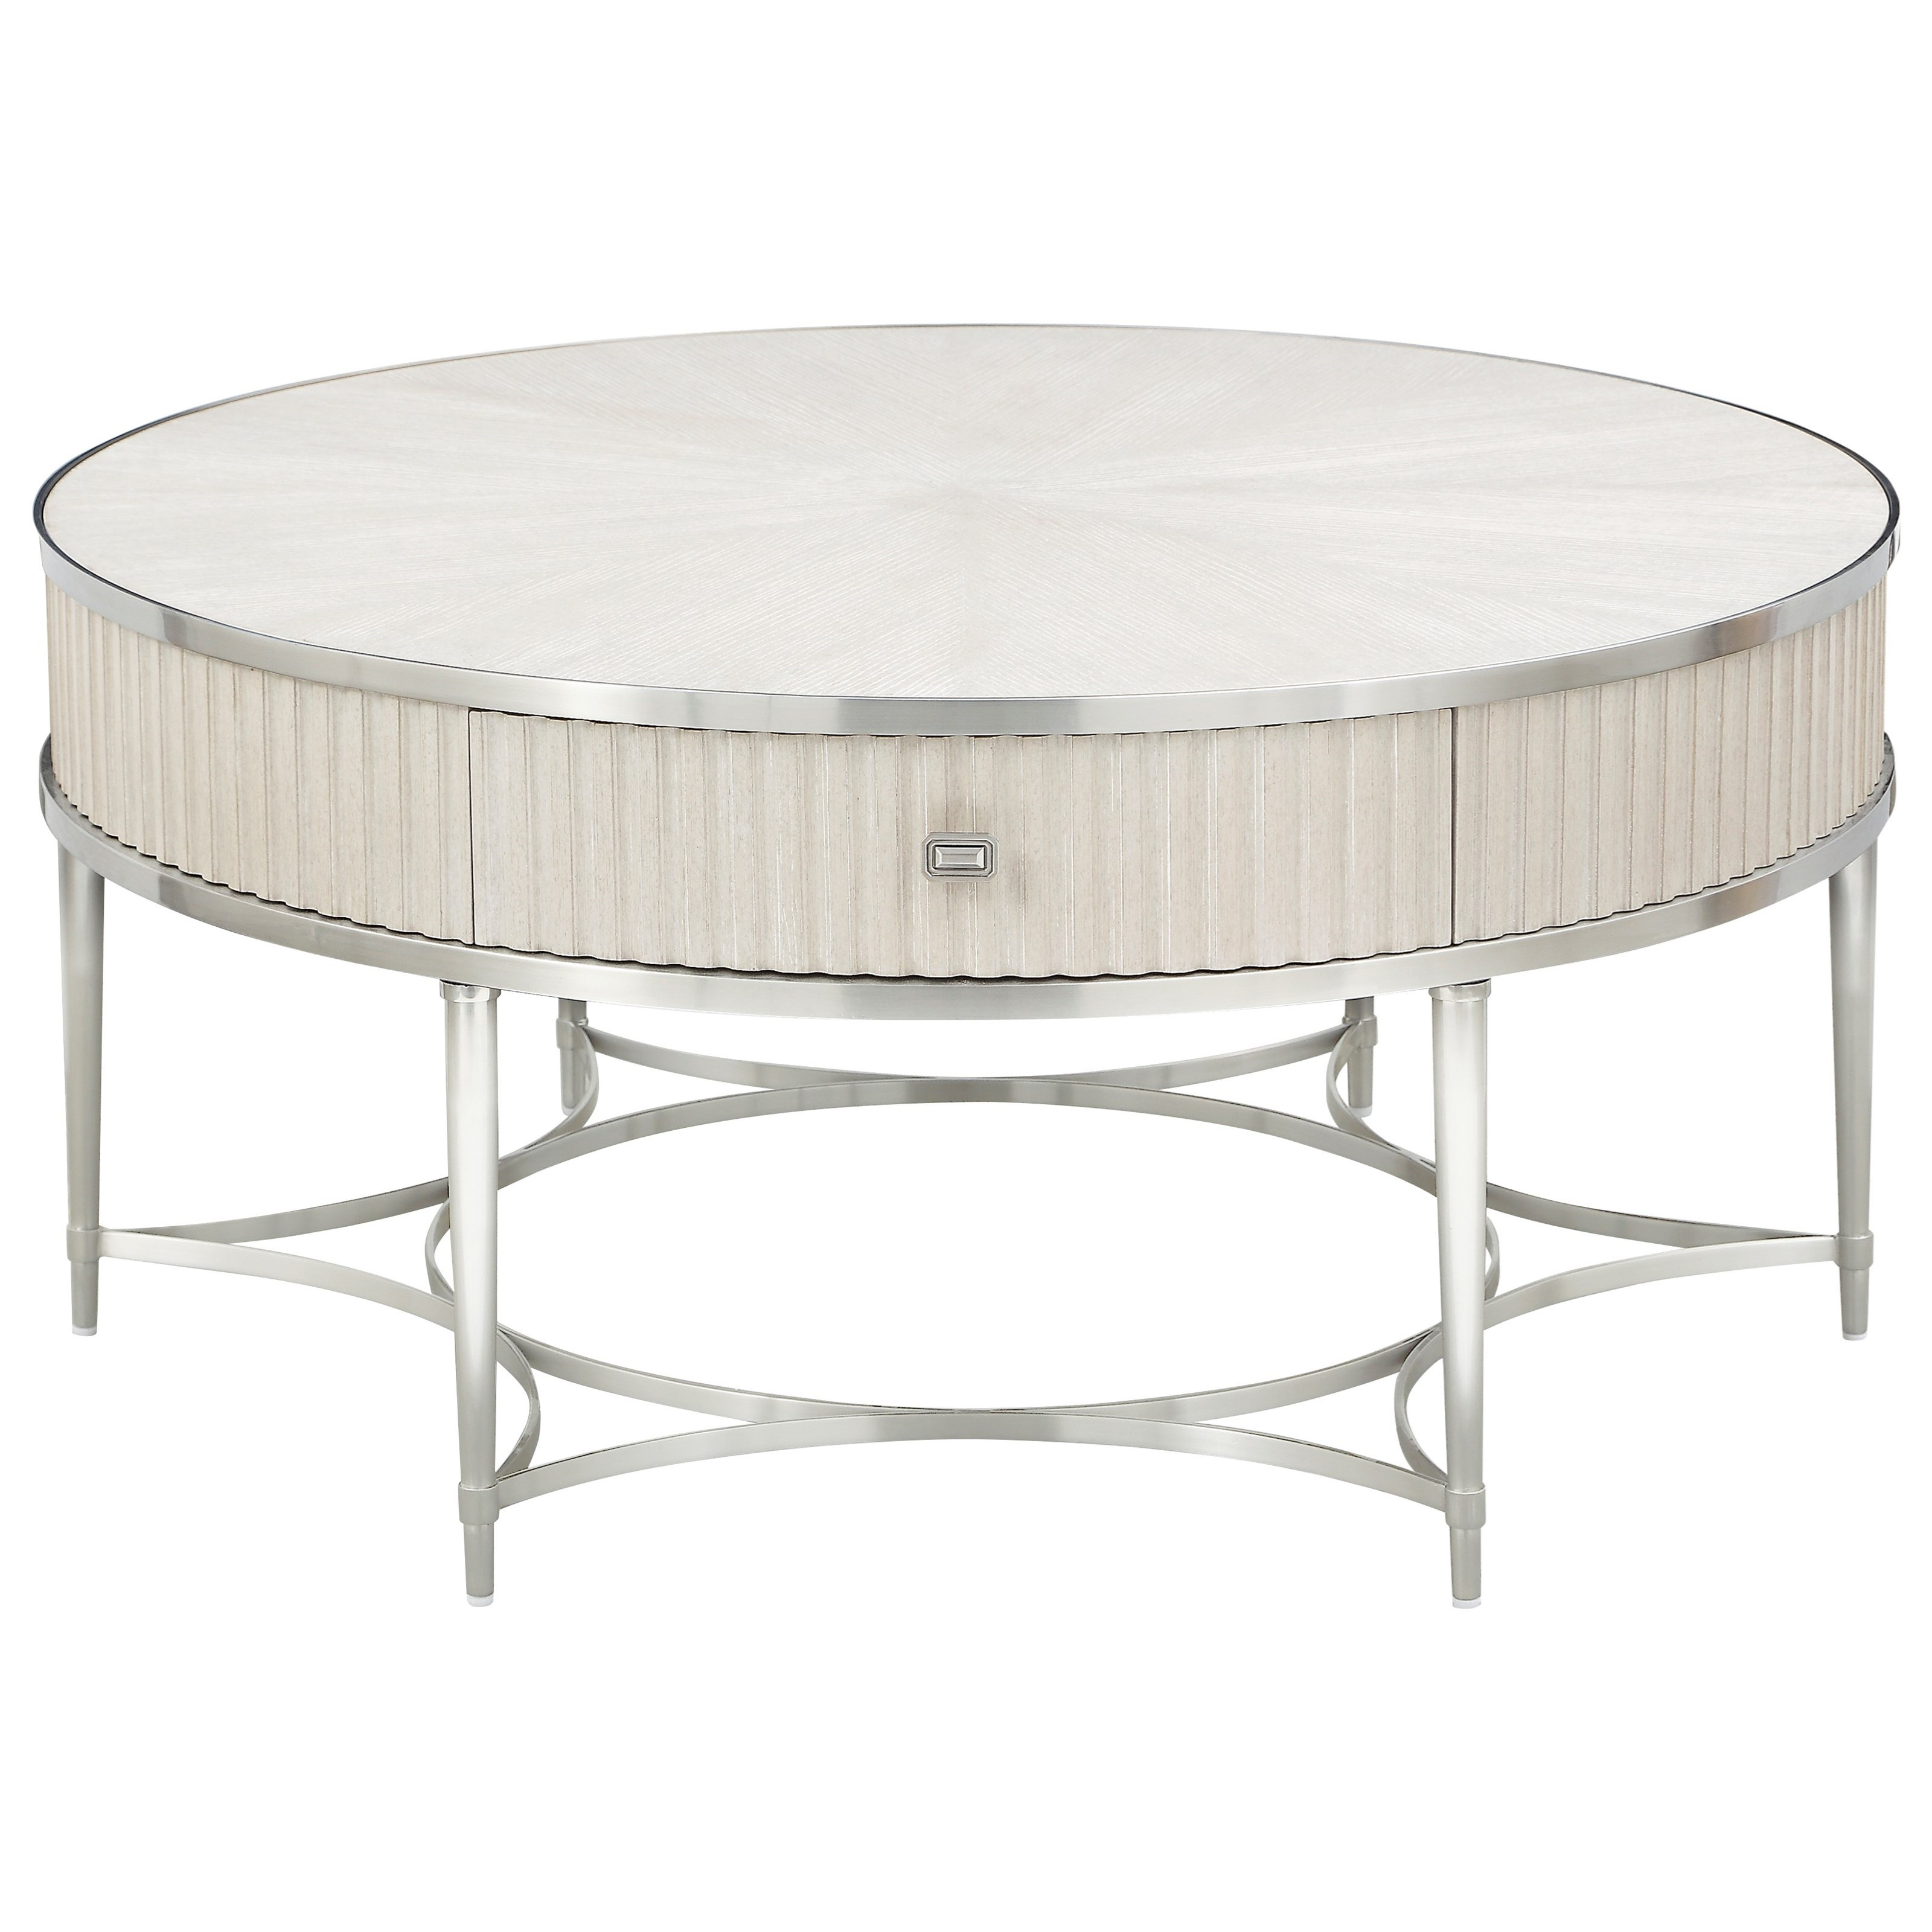 La Scala Round Cocktail Table by Klien Furniture at Sprintz Furniture